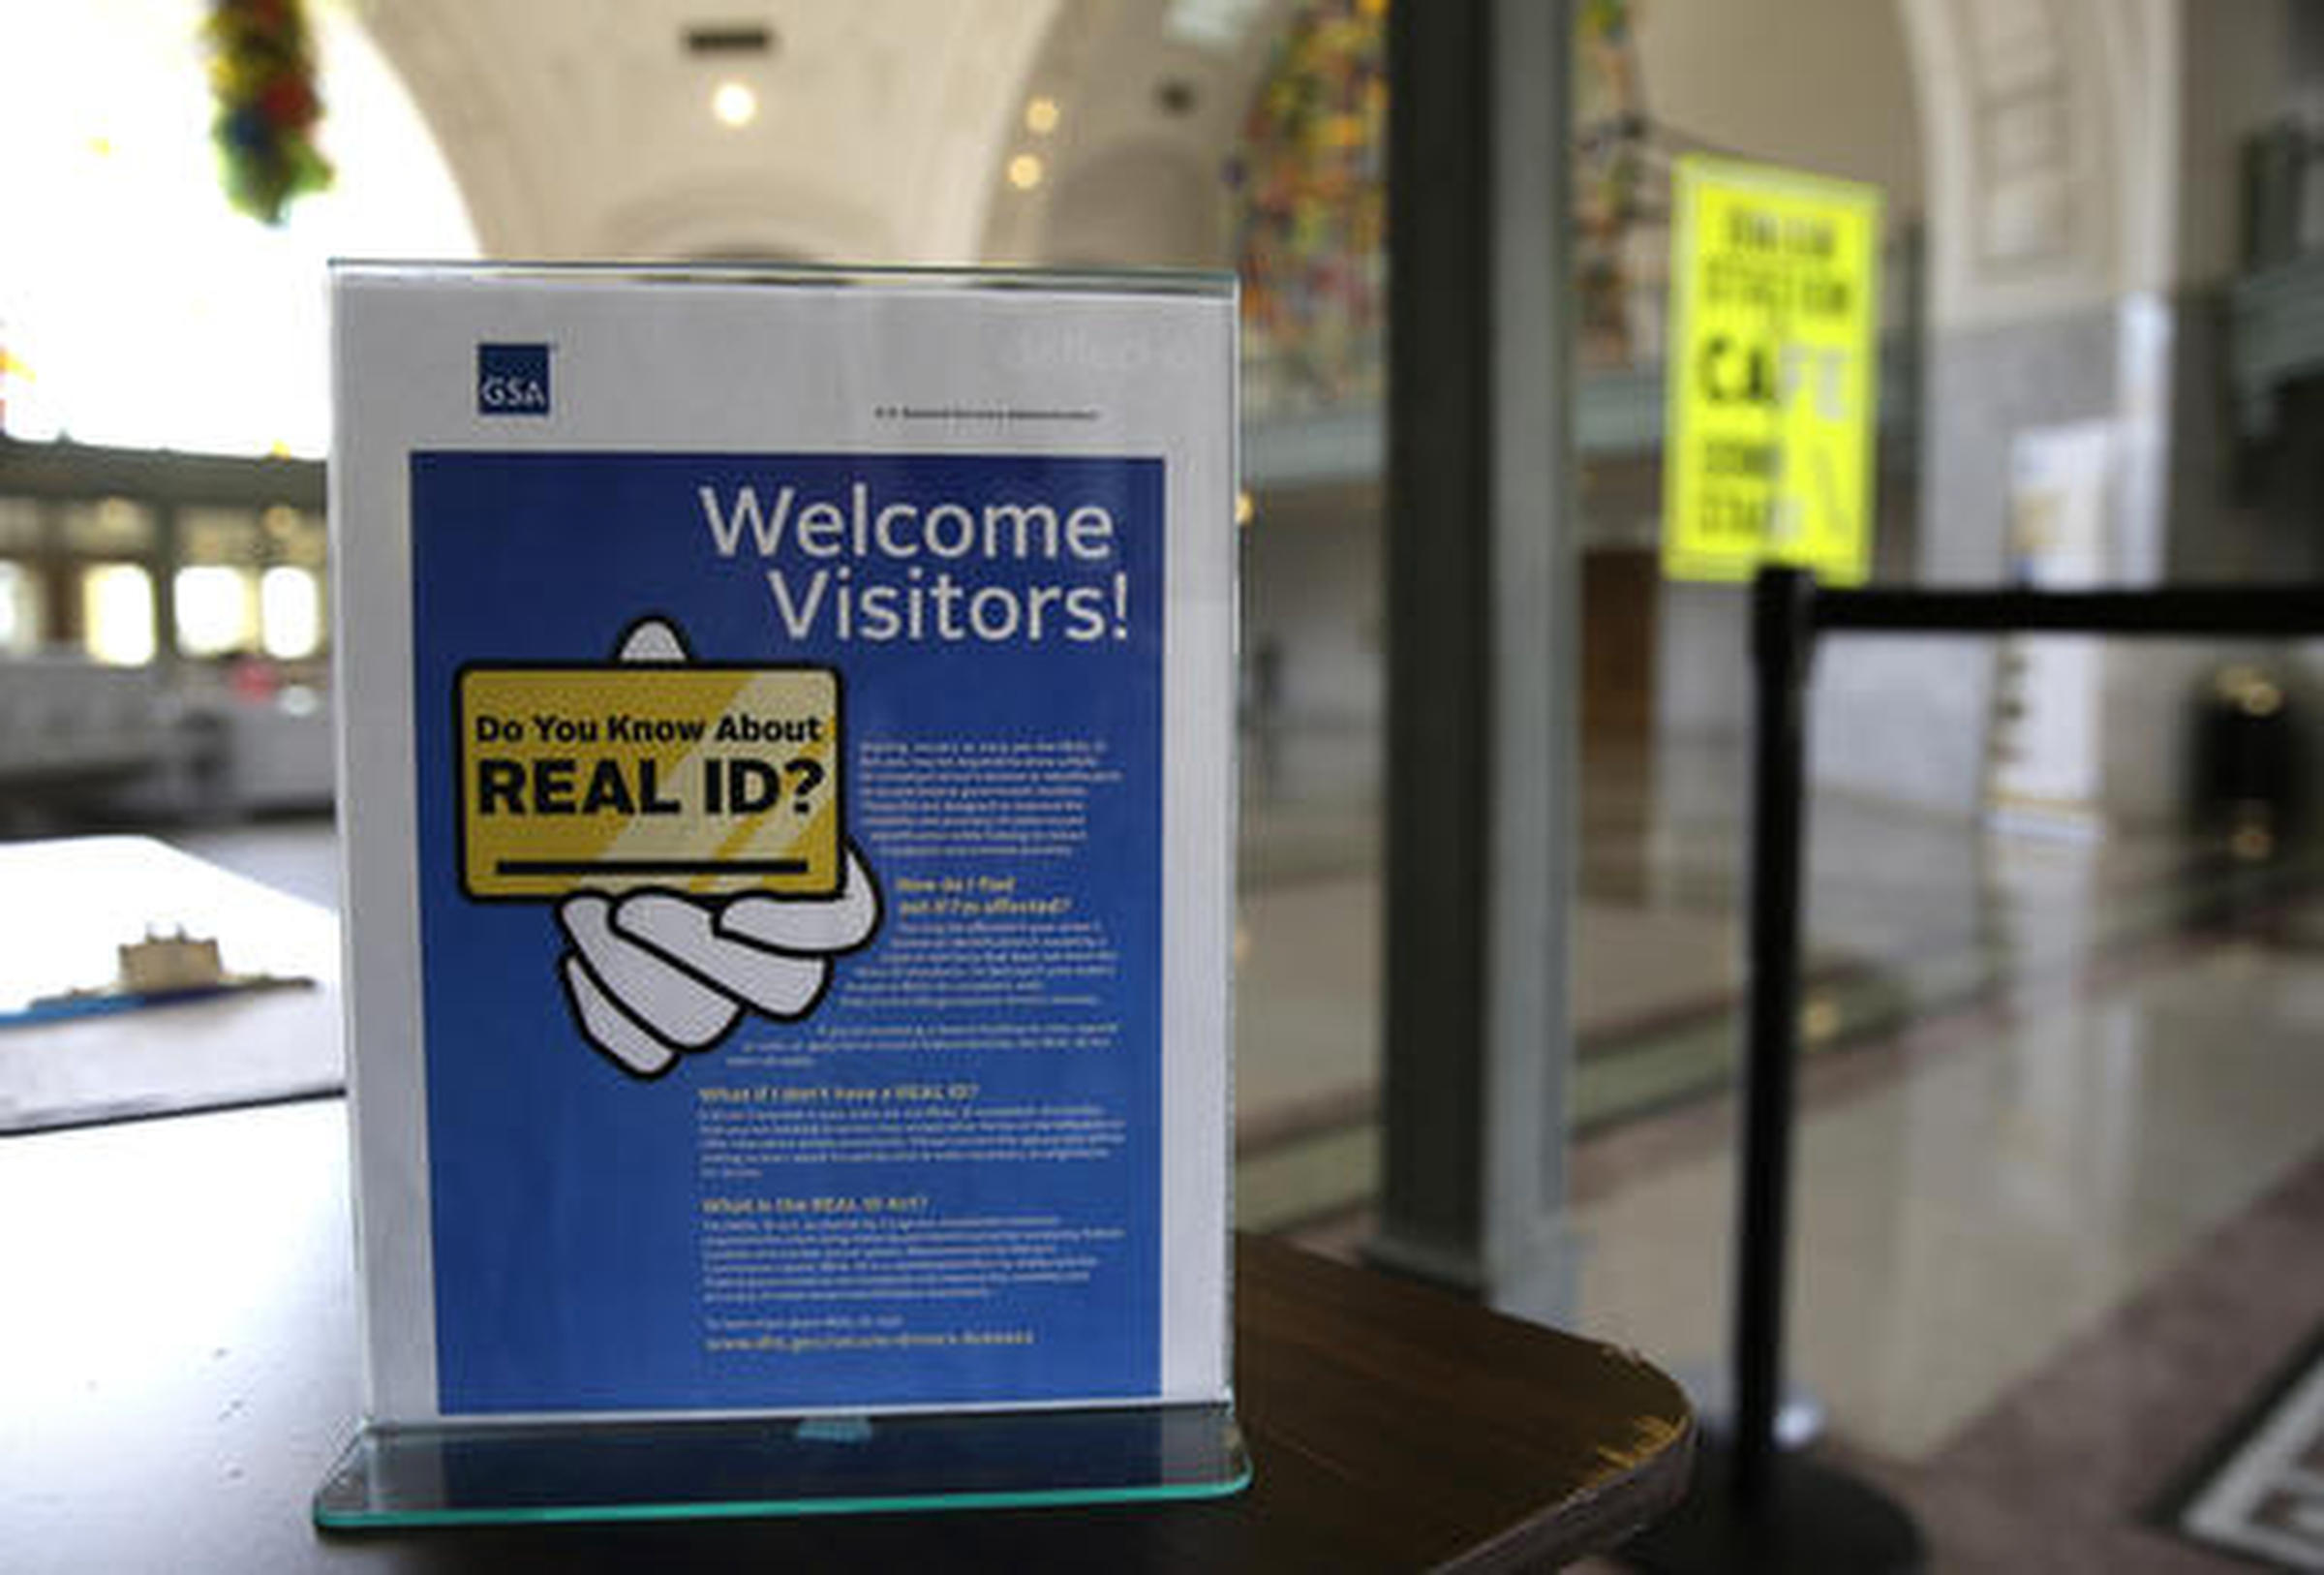 Gov. Tom Wolf will sign Real ID law this week